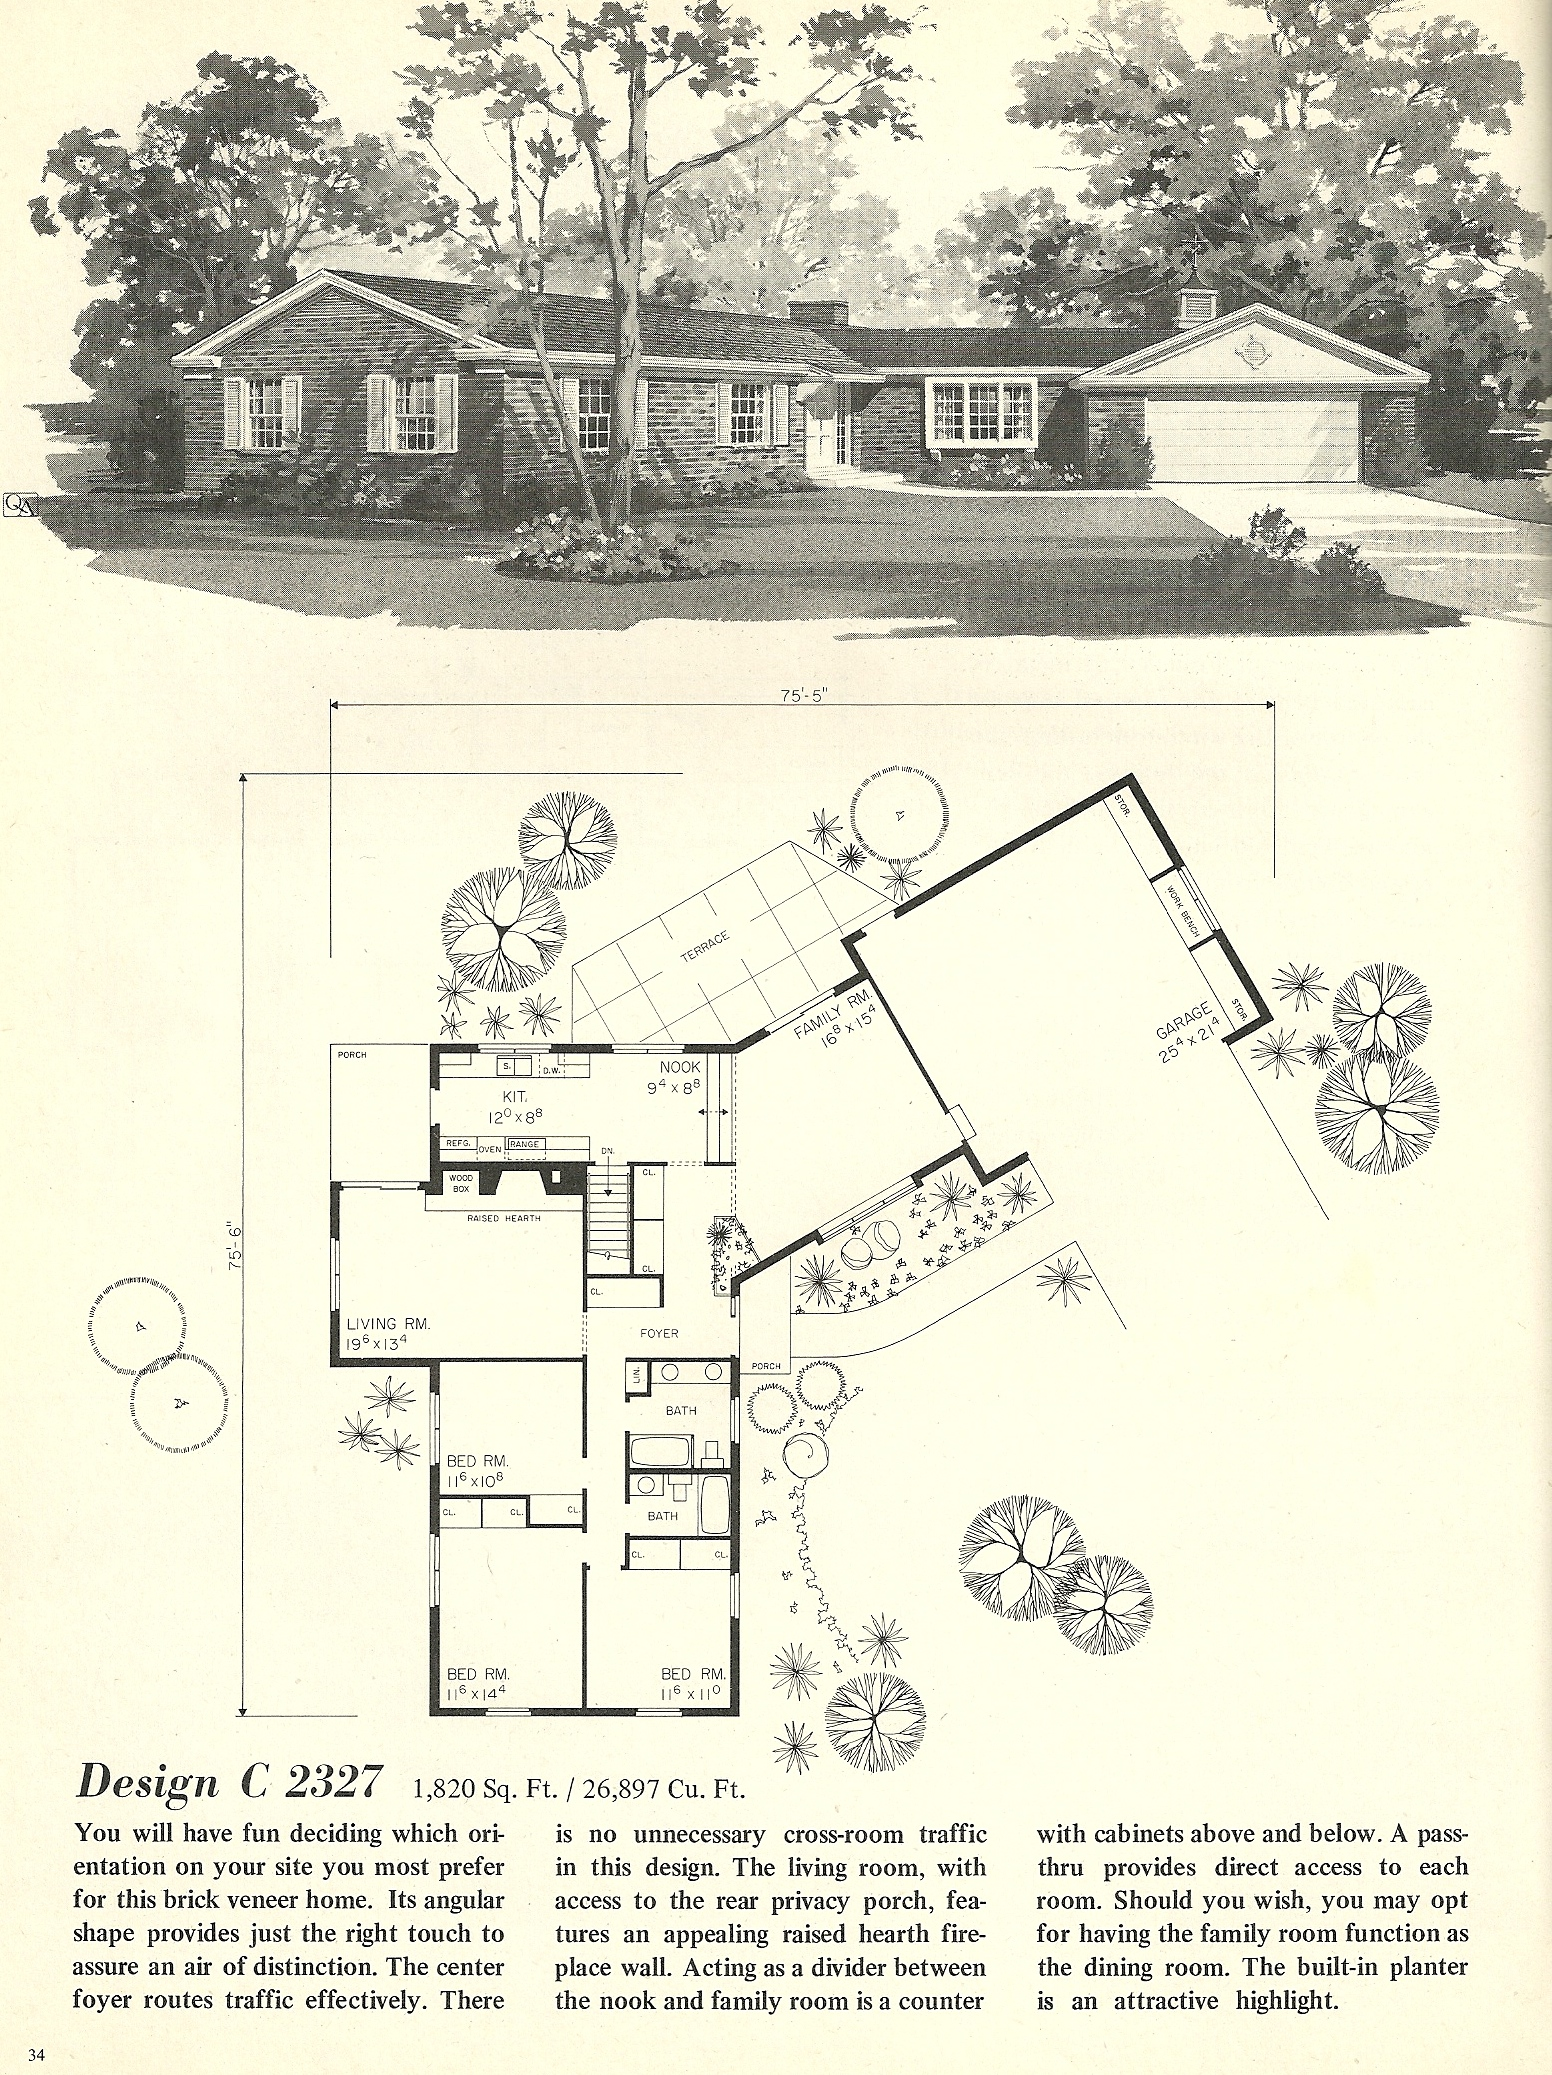 Vintage house plans 2327 antique alter ego for Vintage floor plans